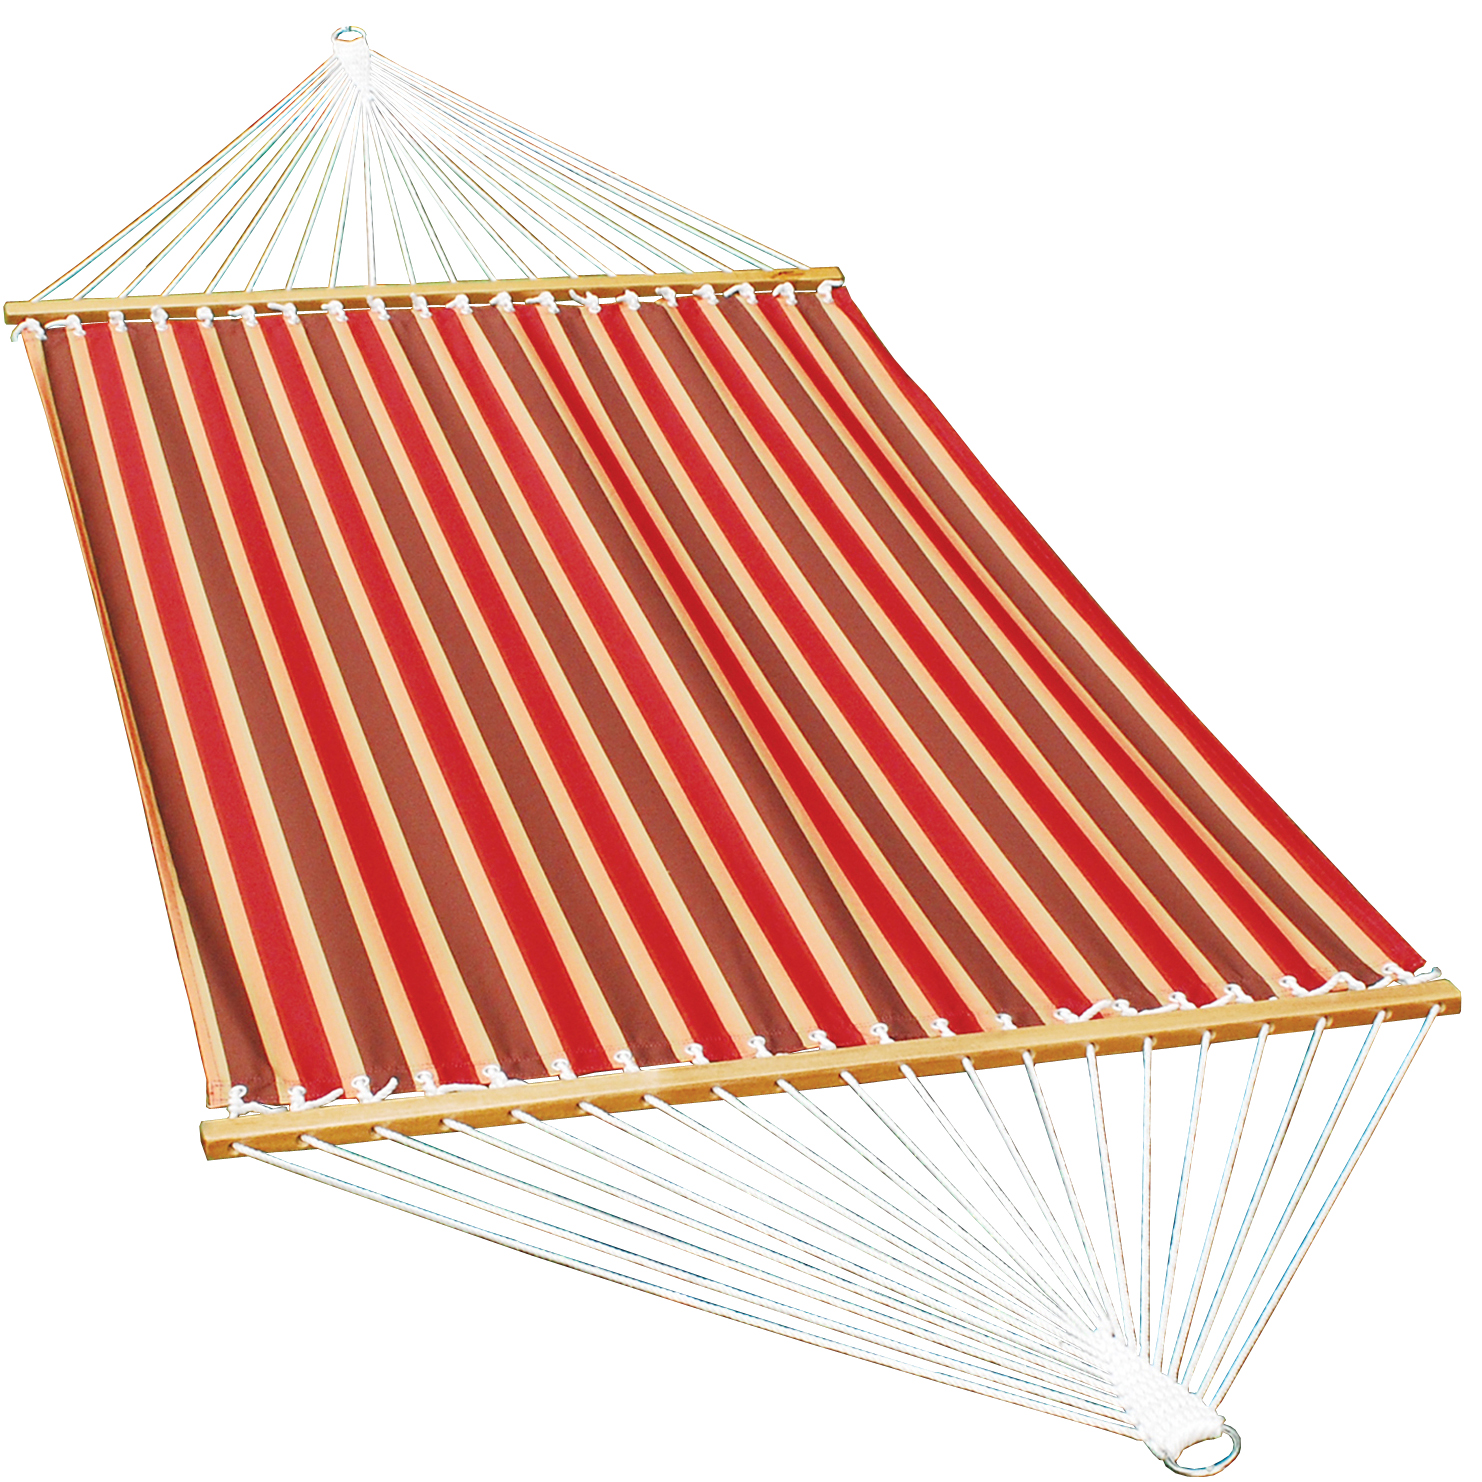 13' Fabric Hammock - Autumn Stripe